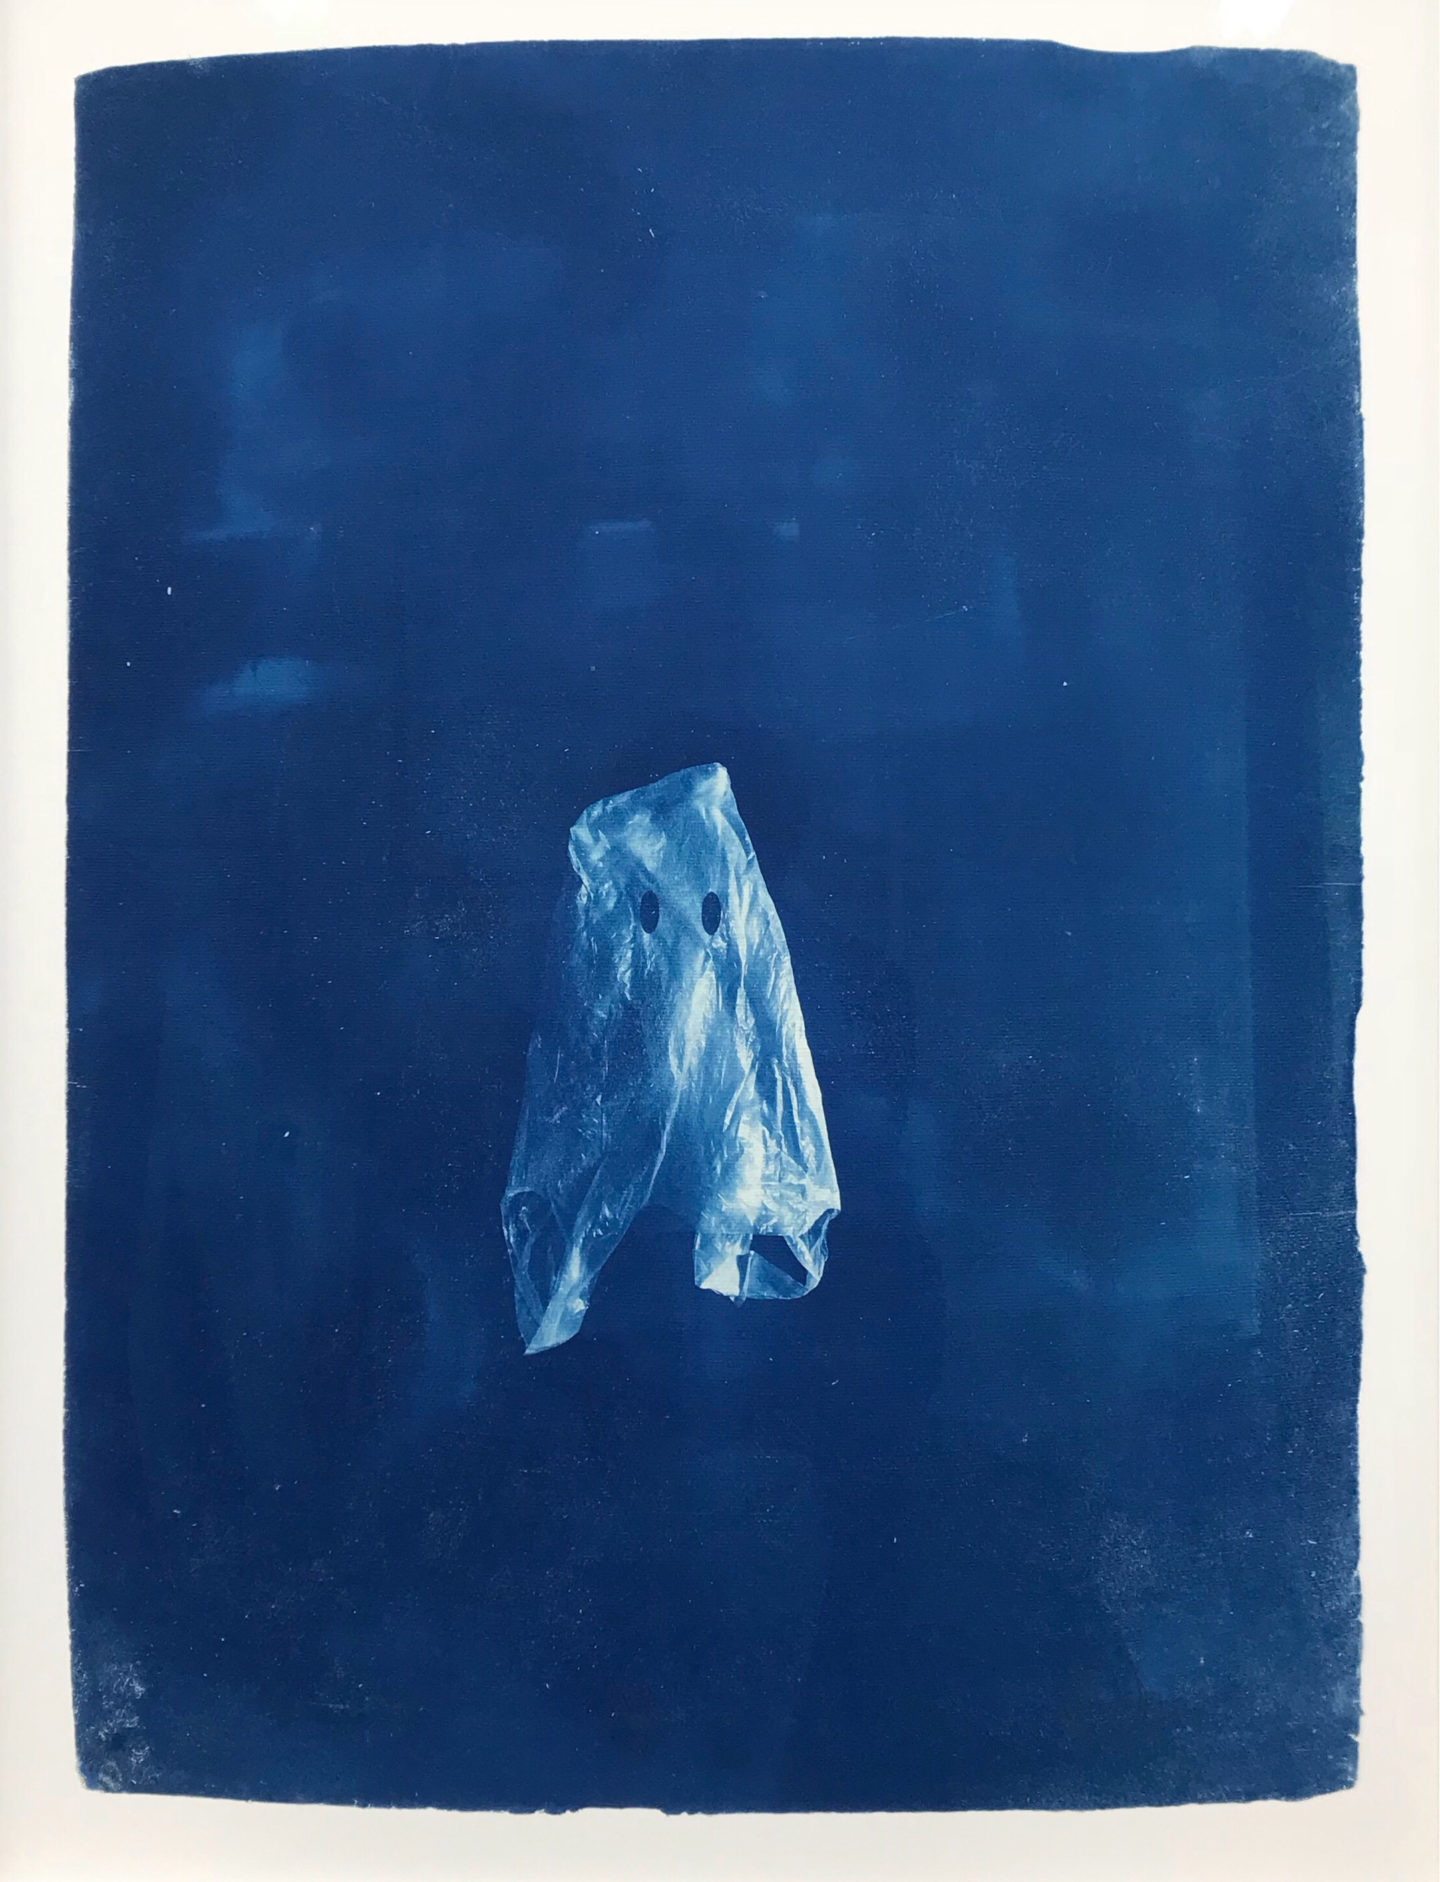 And The Ghosts Of Plastic Bags By Craig Keenan Print Club London